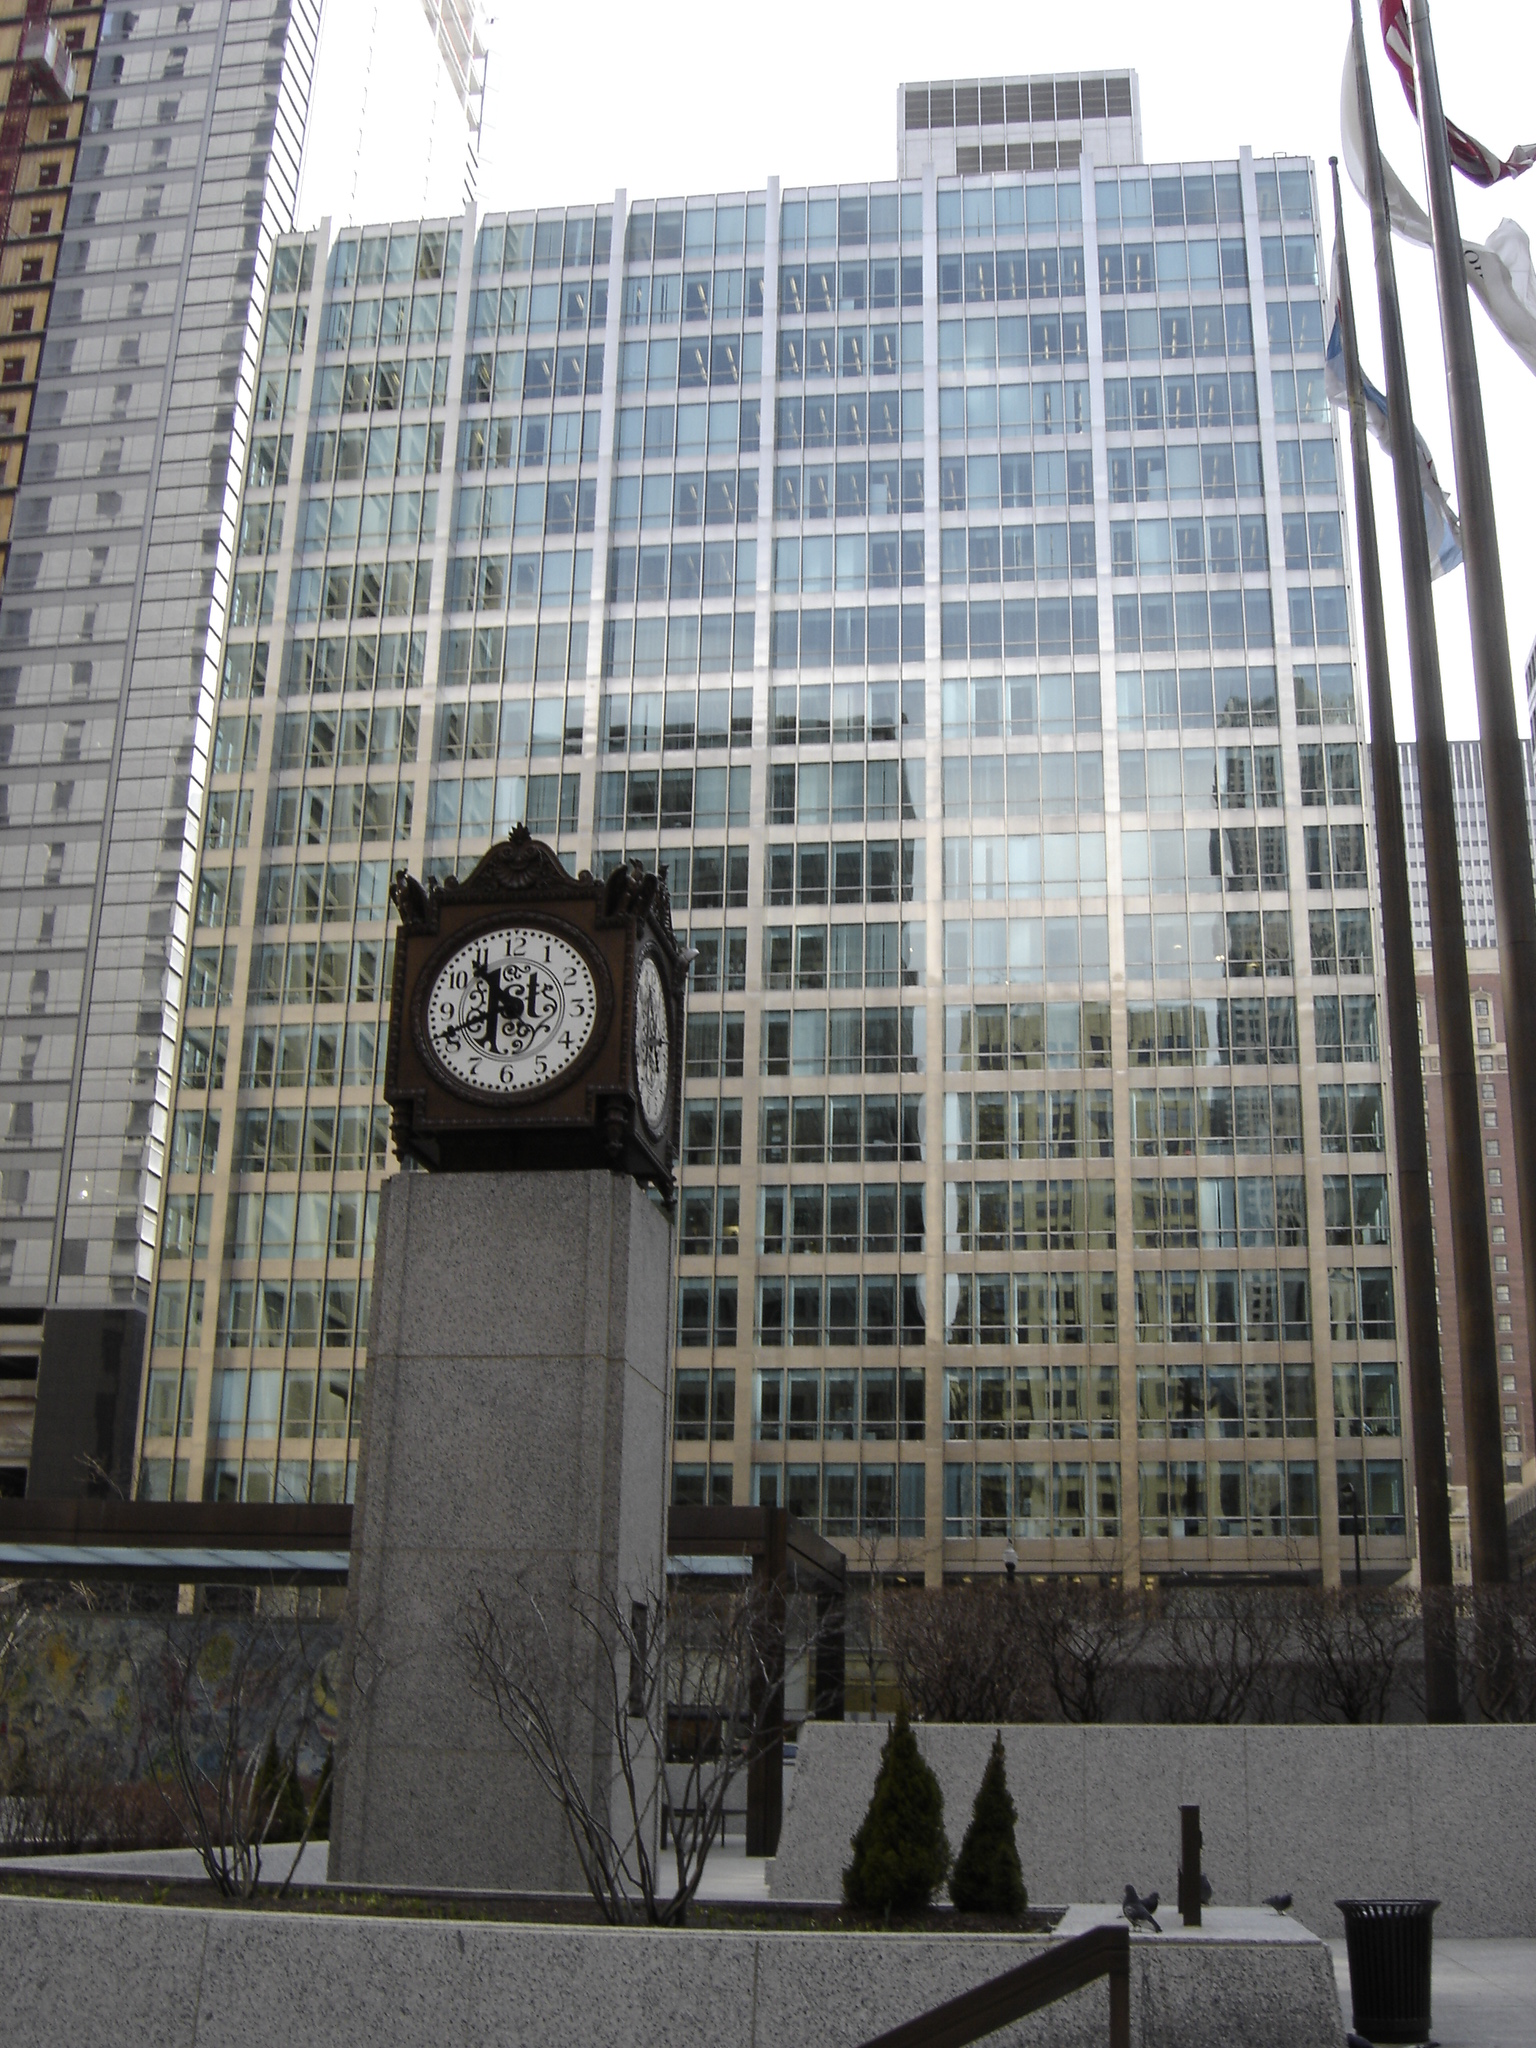 This building became the first modern glass and exposed steel building in Chicago hen it was completed in 1958.